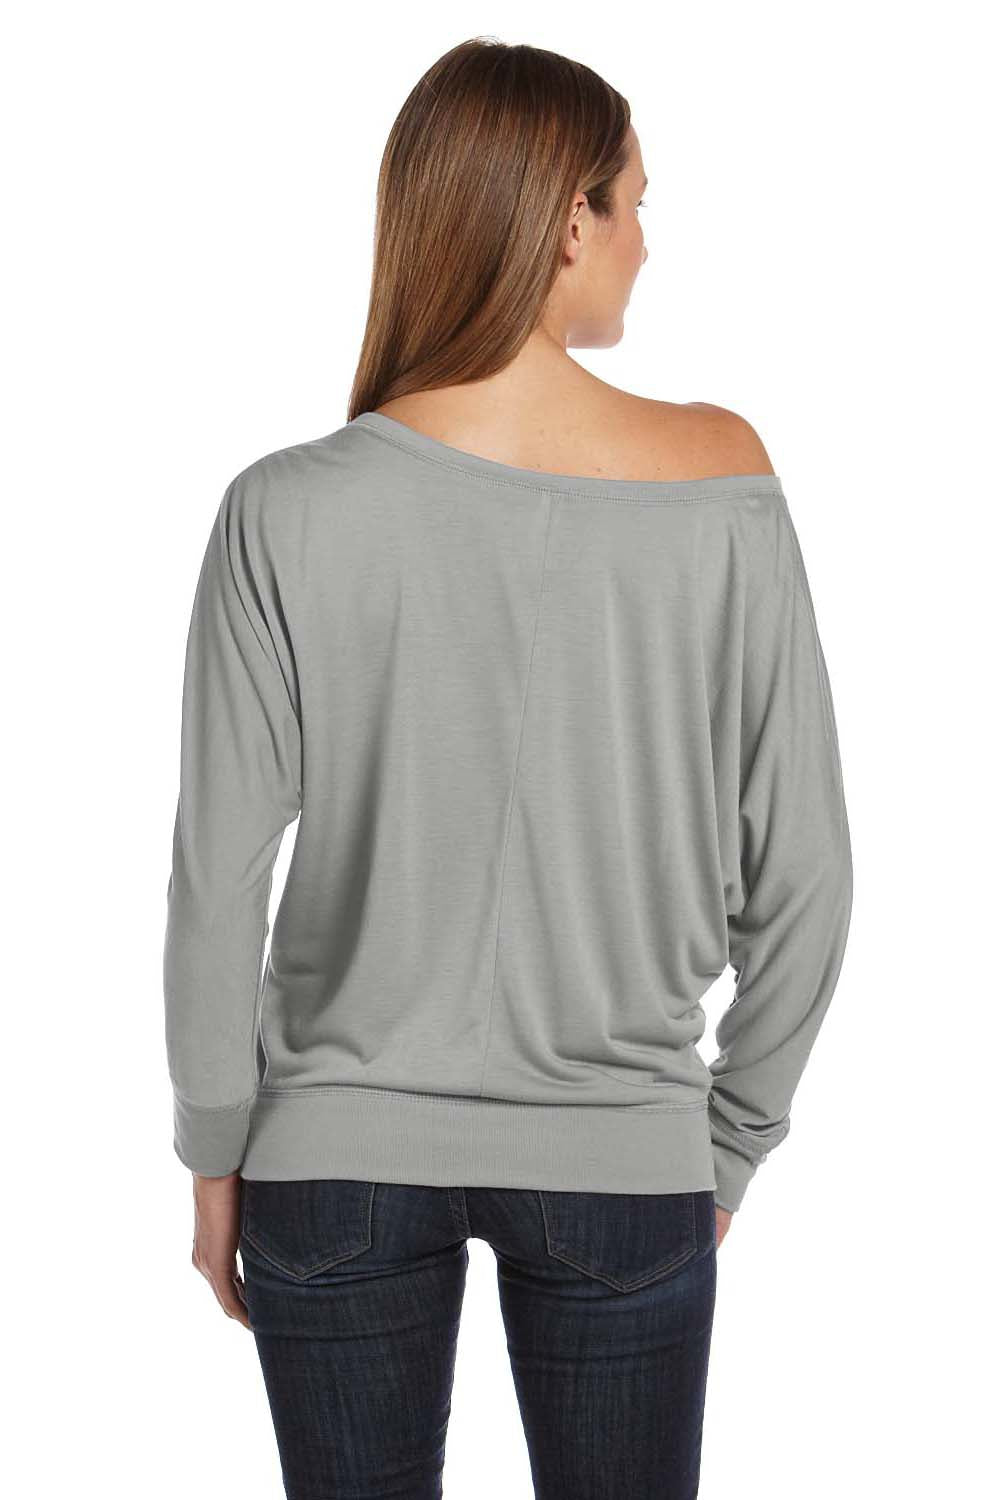 Bella + Canvas 8850 Womens Flowy Off Shoulder Long Sleeve Wide Neck T-Shirt White Marble Back